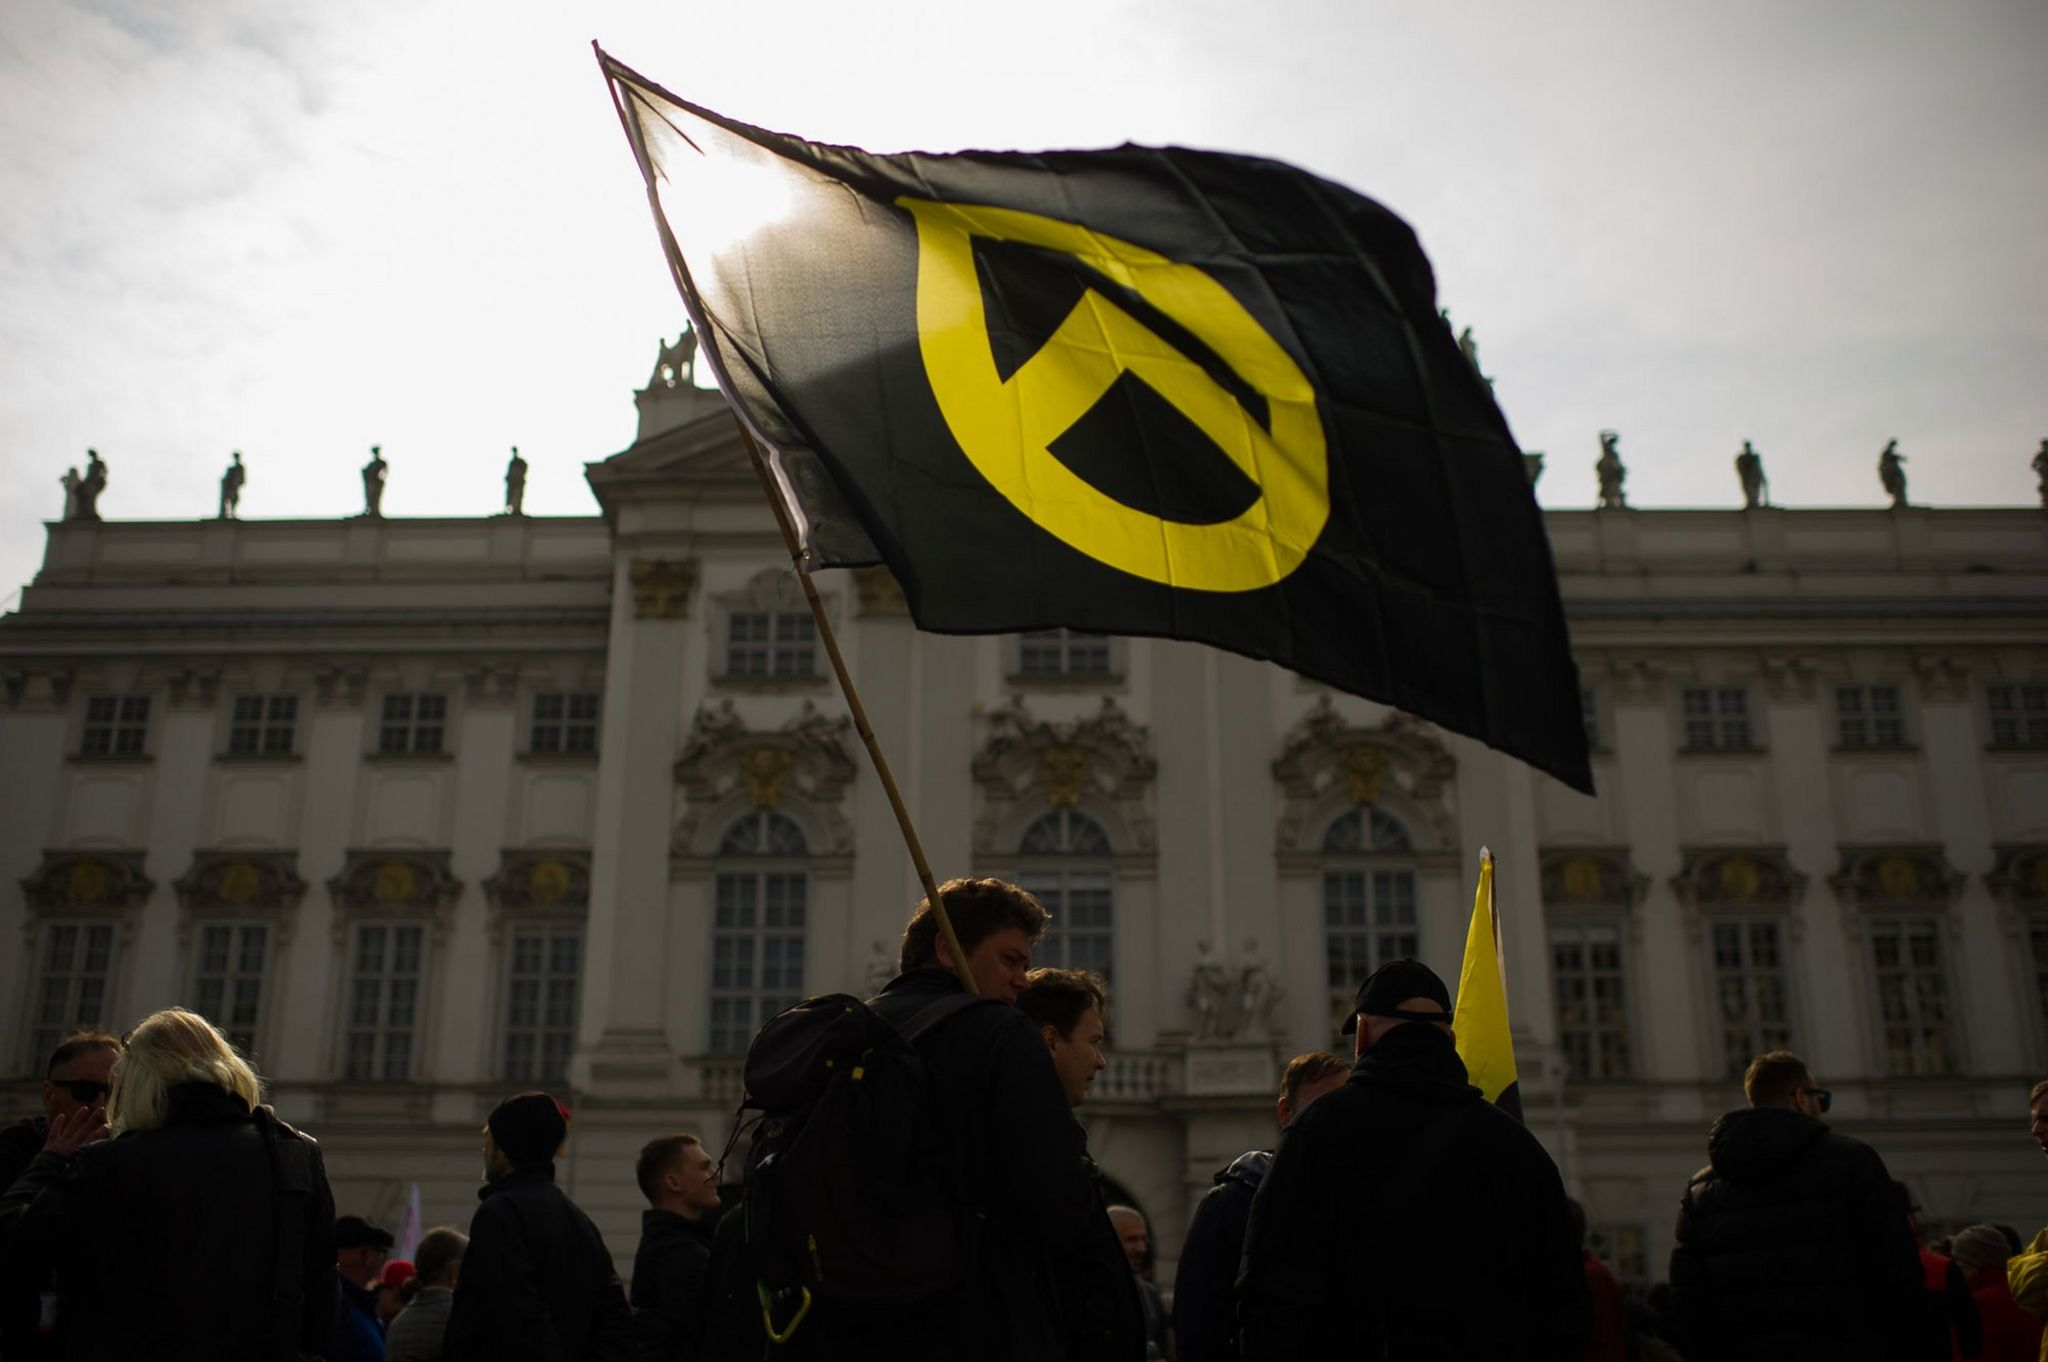 Protestor waves a flag with the logo of Generation Identity in front of the Justice Ministry. Vienna, April 2019